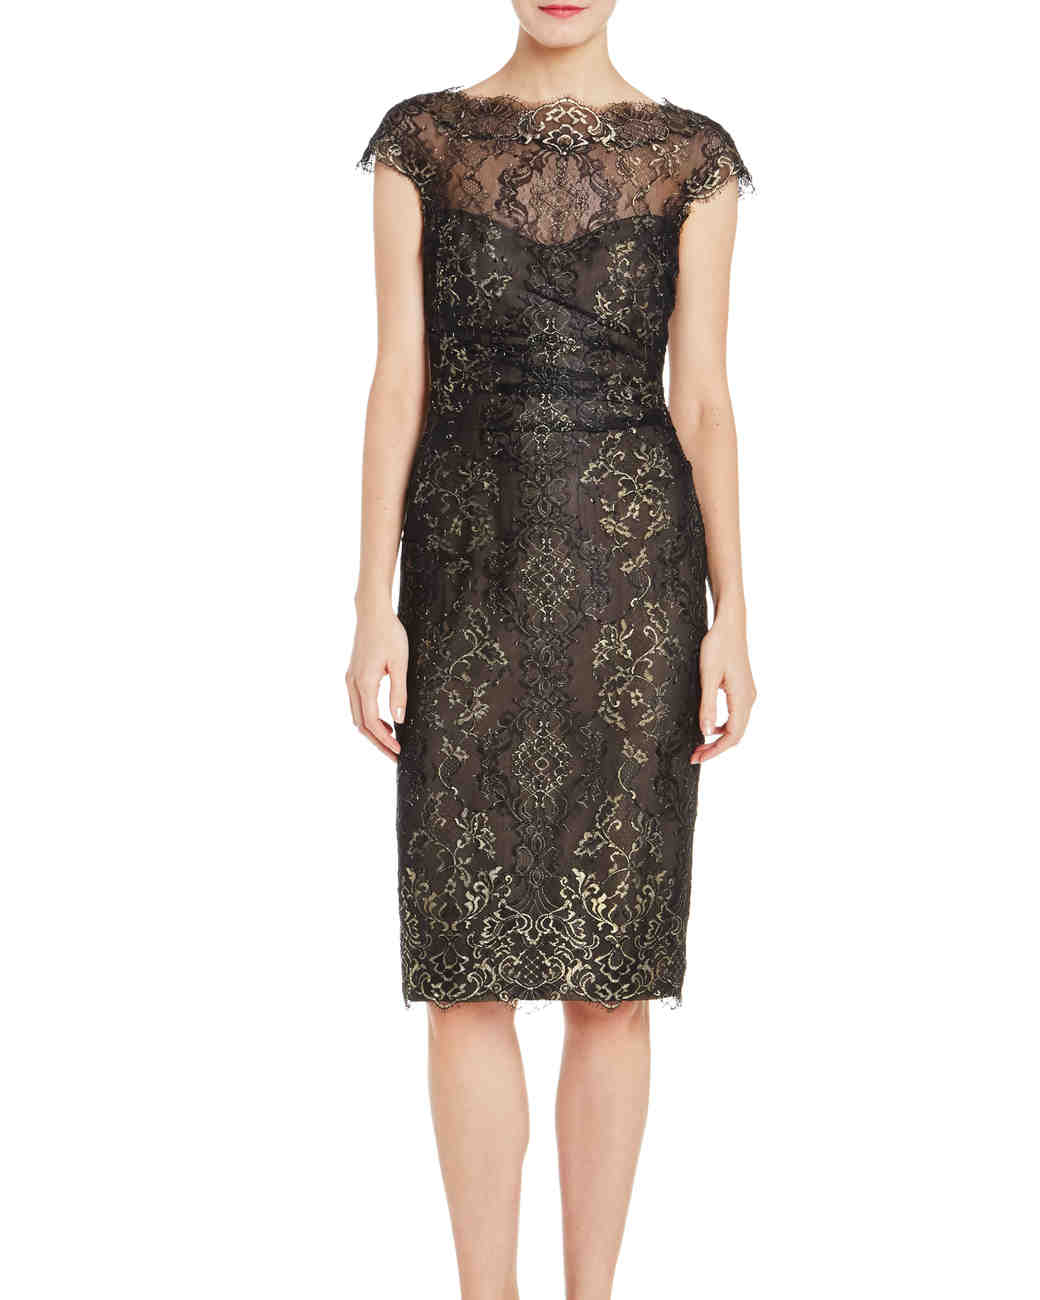 Monique Lhuillier Cap Sleeve Black Dress